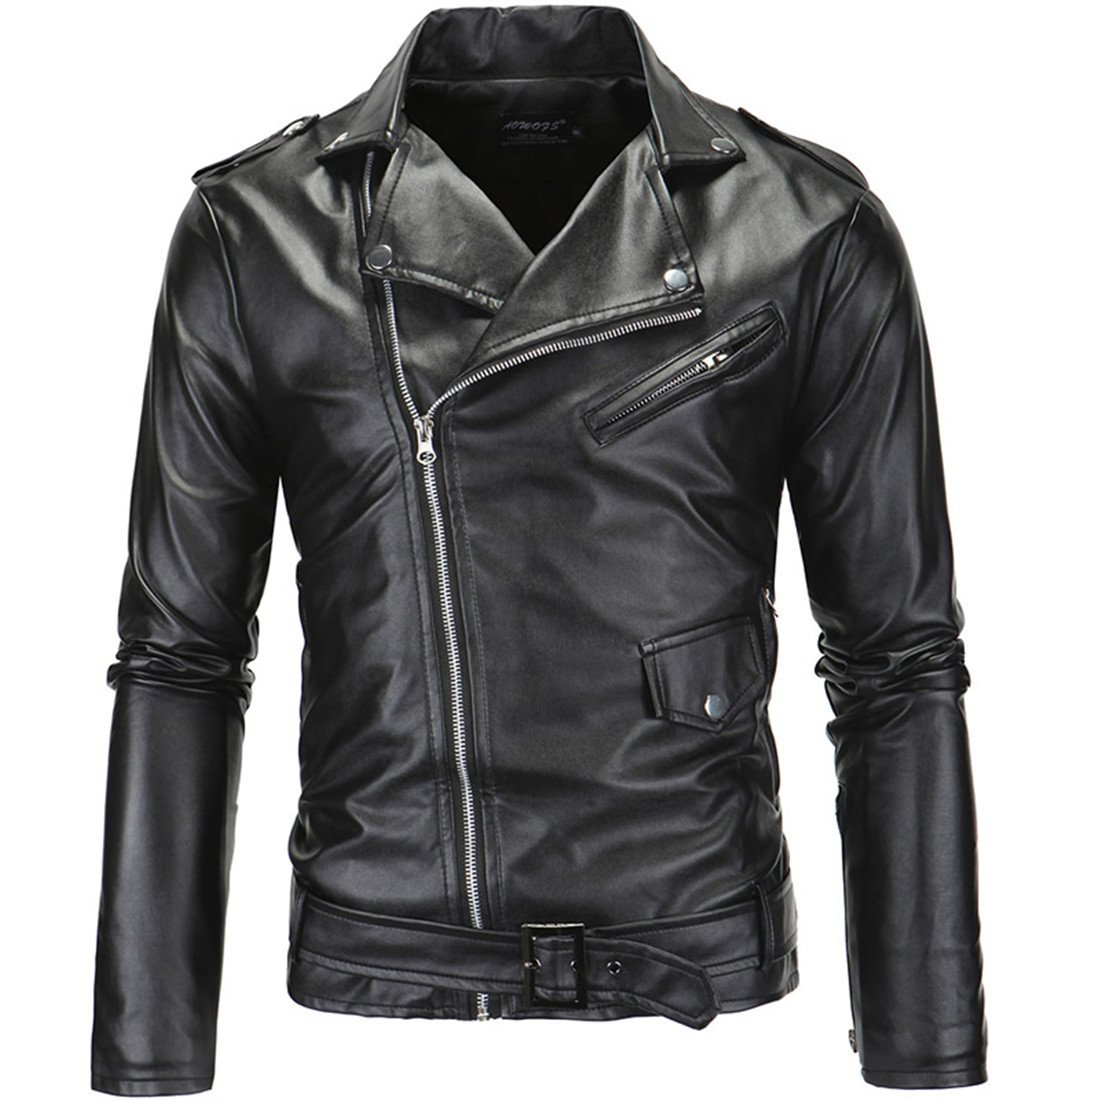 PU Leather Jacket, Mens Long Sleeve PU Leather Coat Biker Black Leather Trench Coat Zipper Jacket For Men HDH